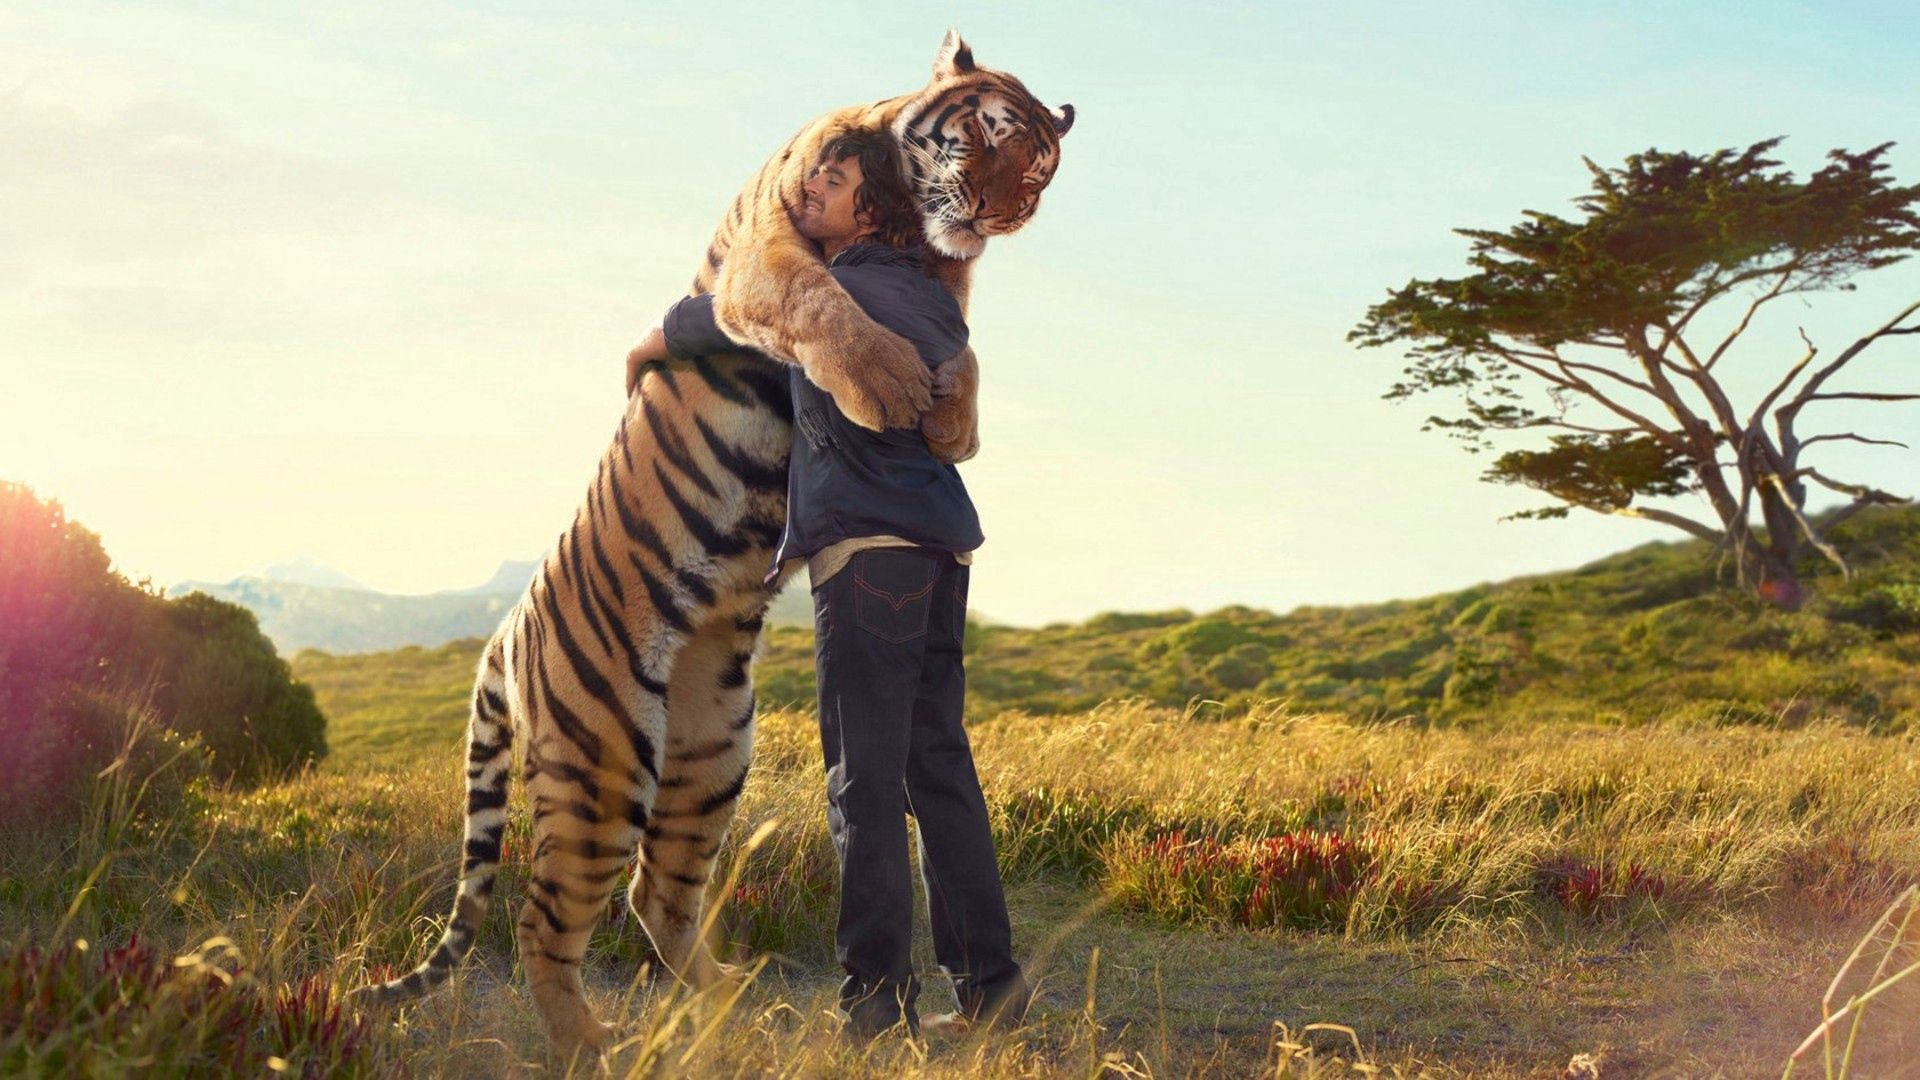 139142 Screensavers and Wallpapers Tiger for phone. Download Miscellanea, Miscellaneous, Tiger, Guy, Embrace, Situation, Meeting pictures for free